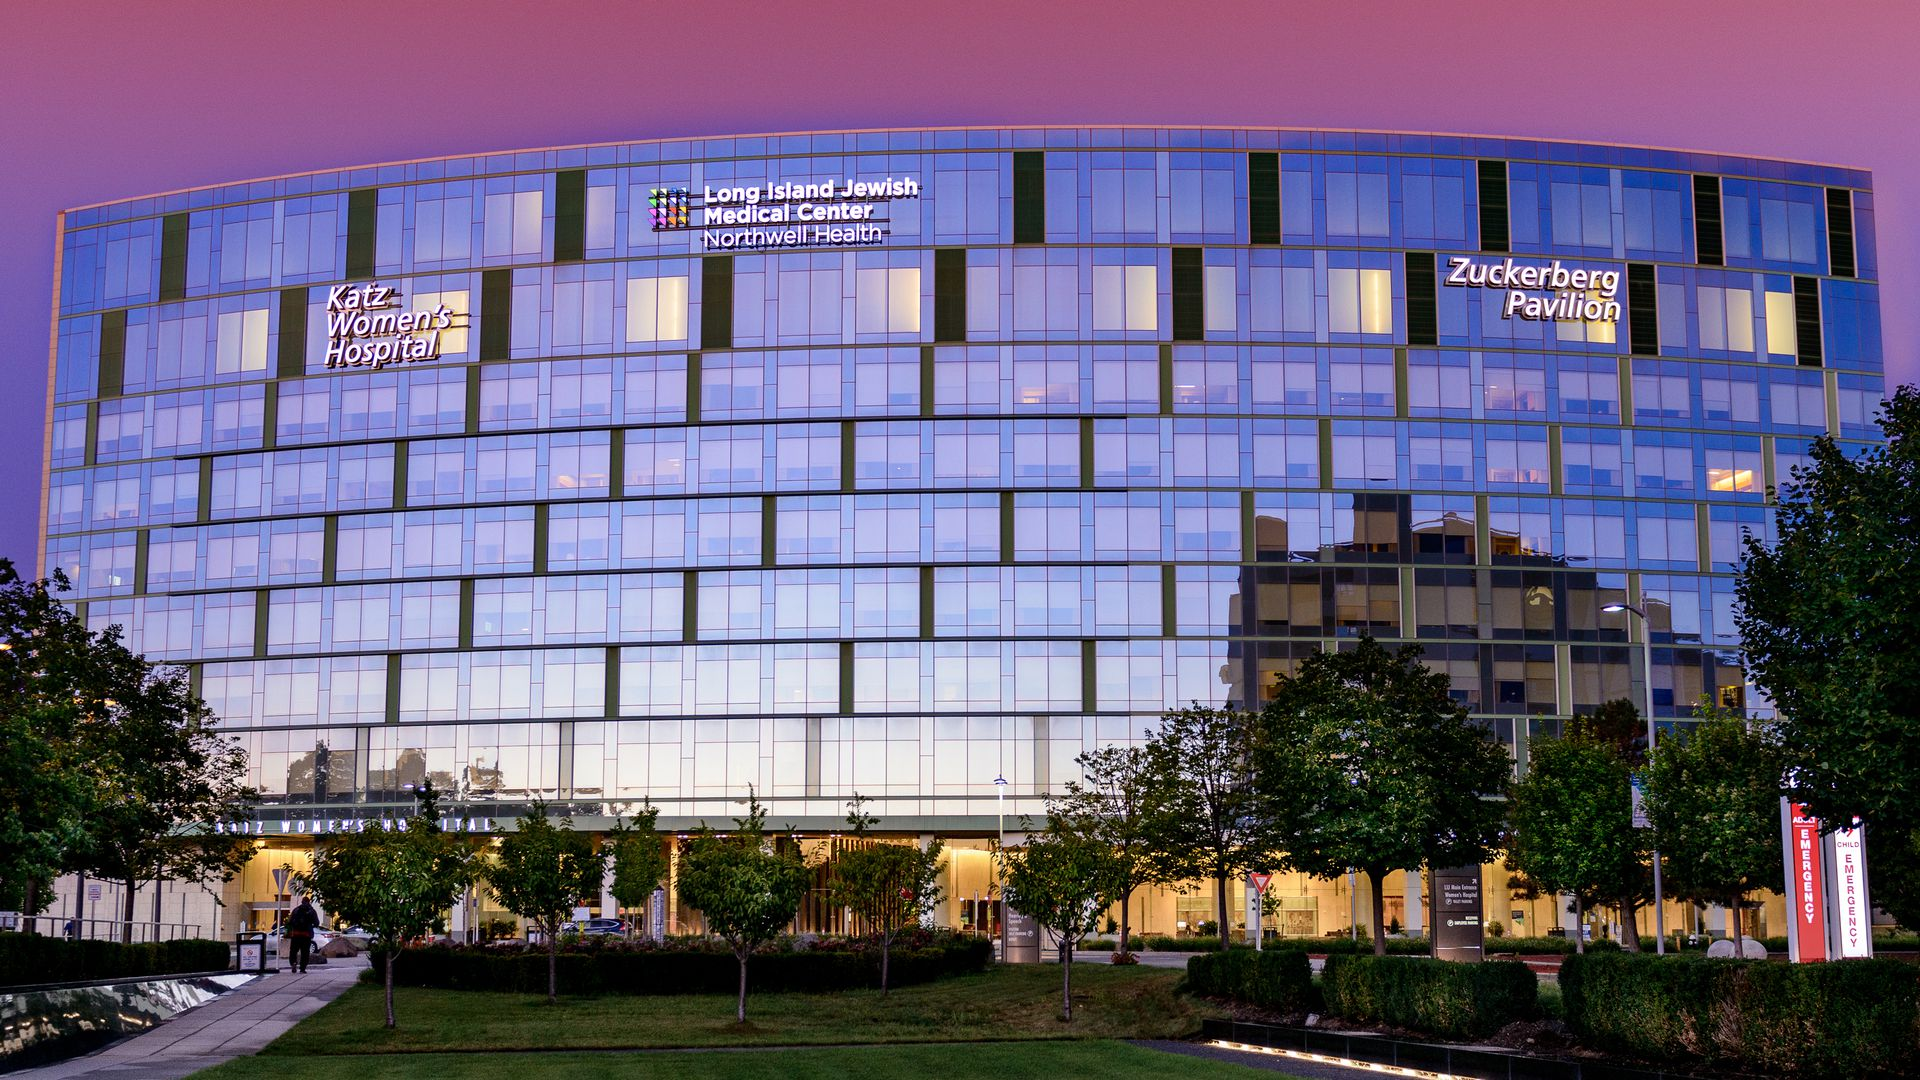 Exterior photo of Long Island Jewish Medical Center hospital with trees and grass in foreground.